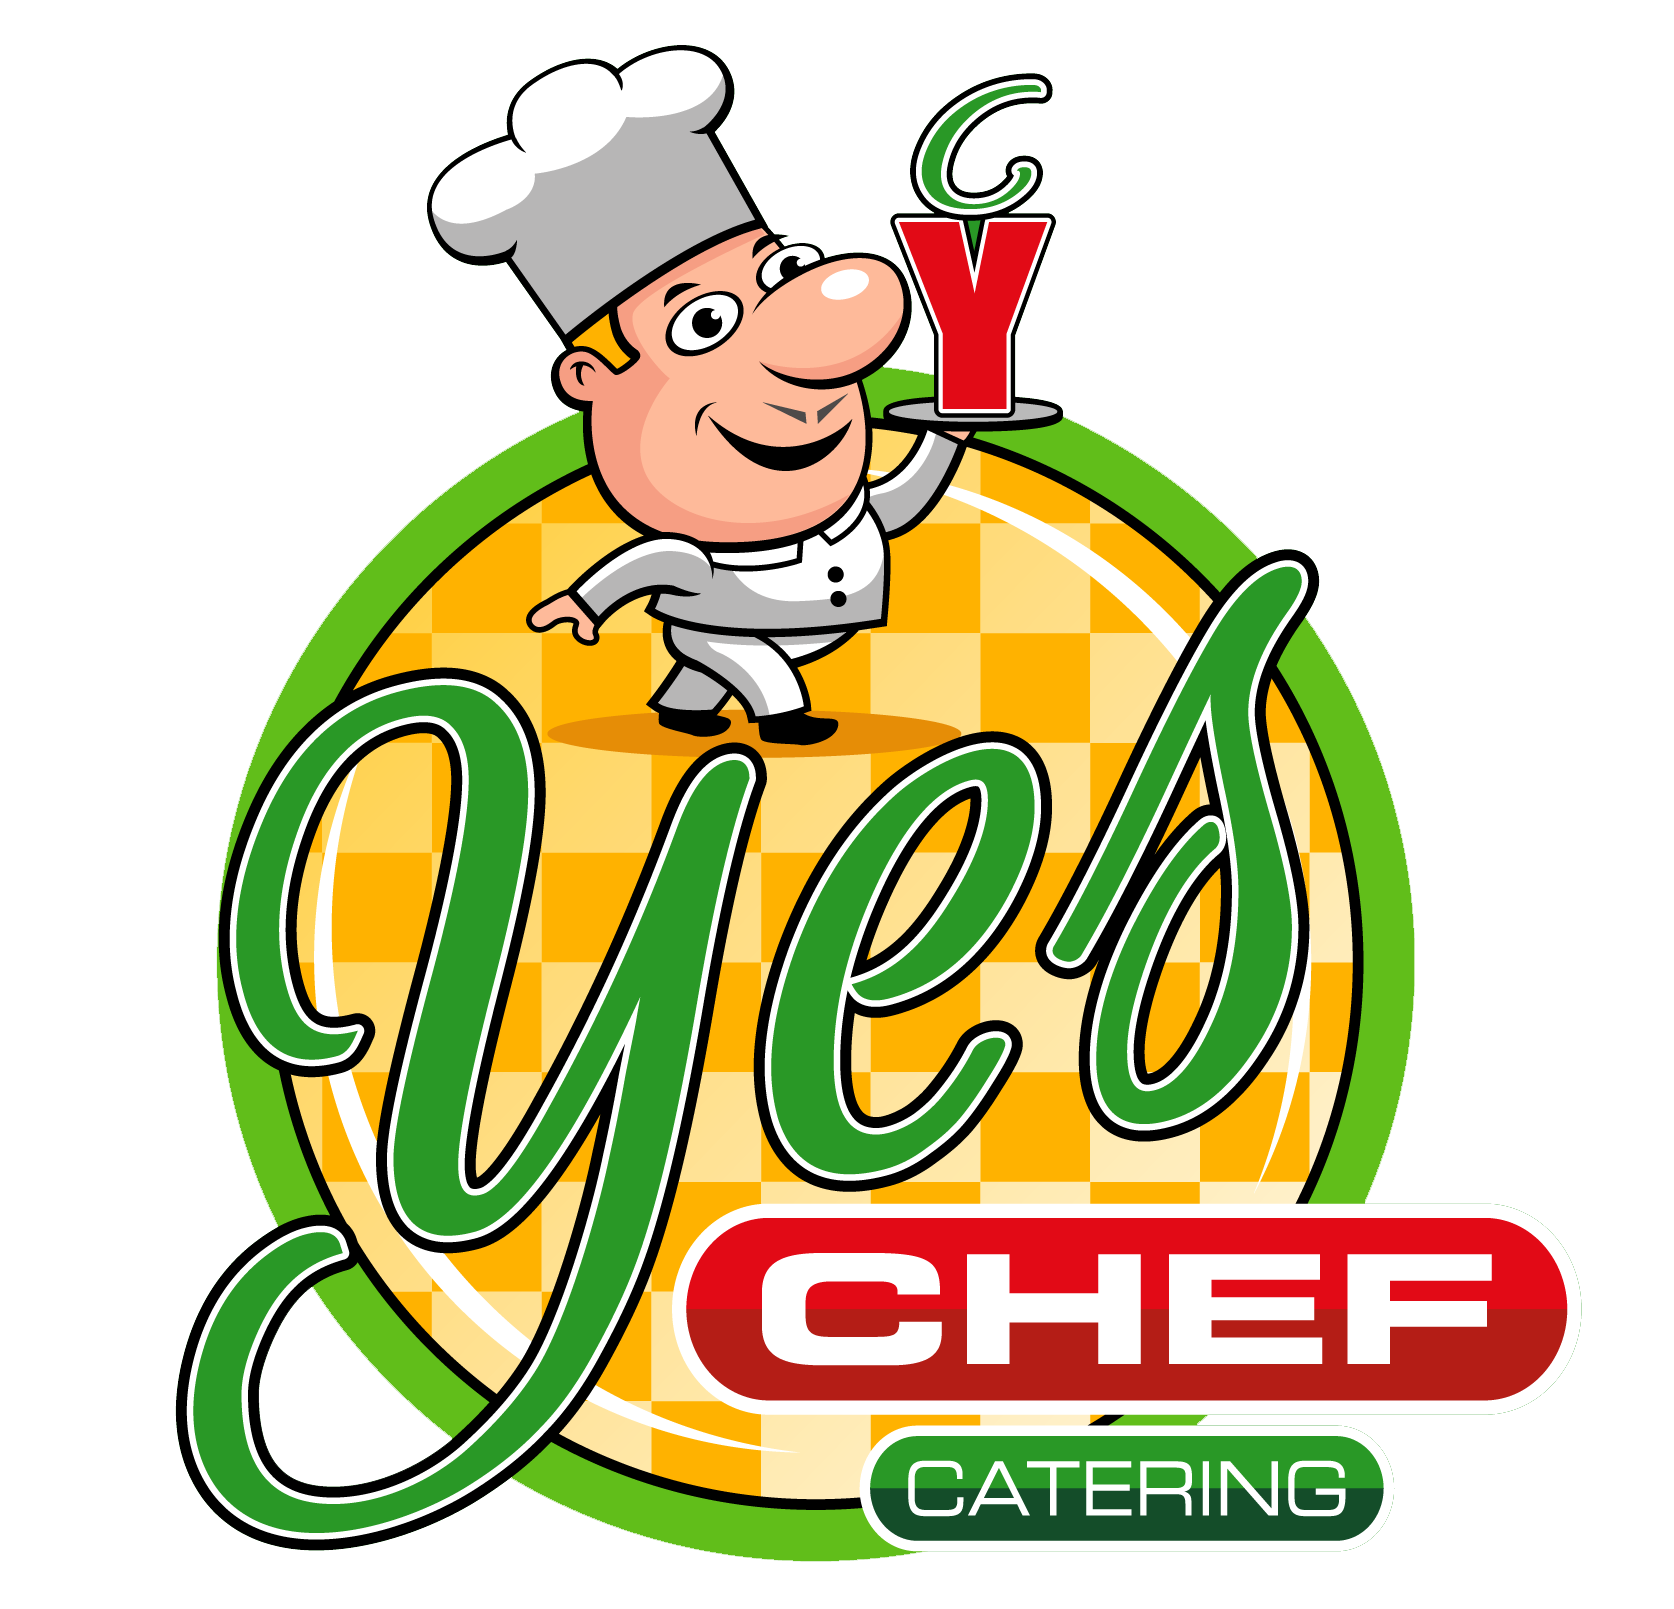 Yes Chef Catering